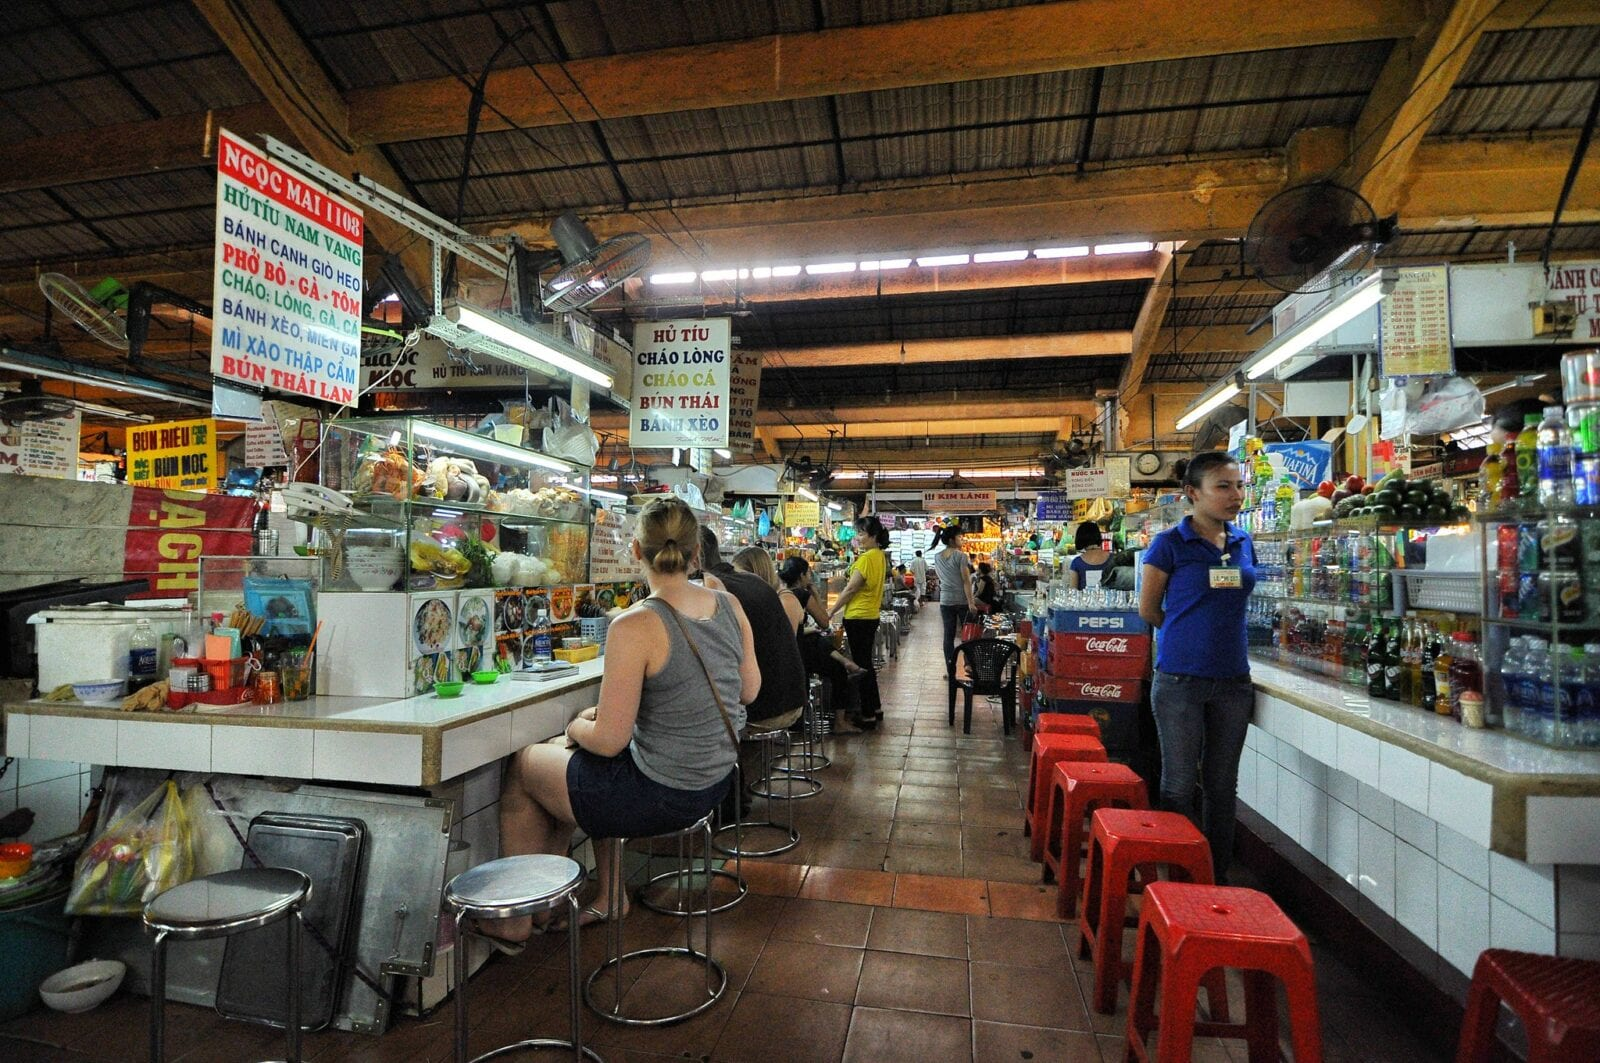 Image from inside the Ben Thanh Market in HCMC, Vietnam